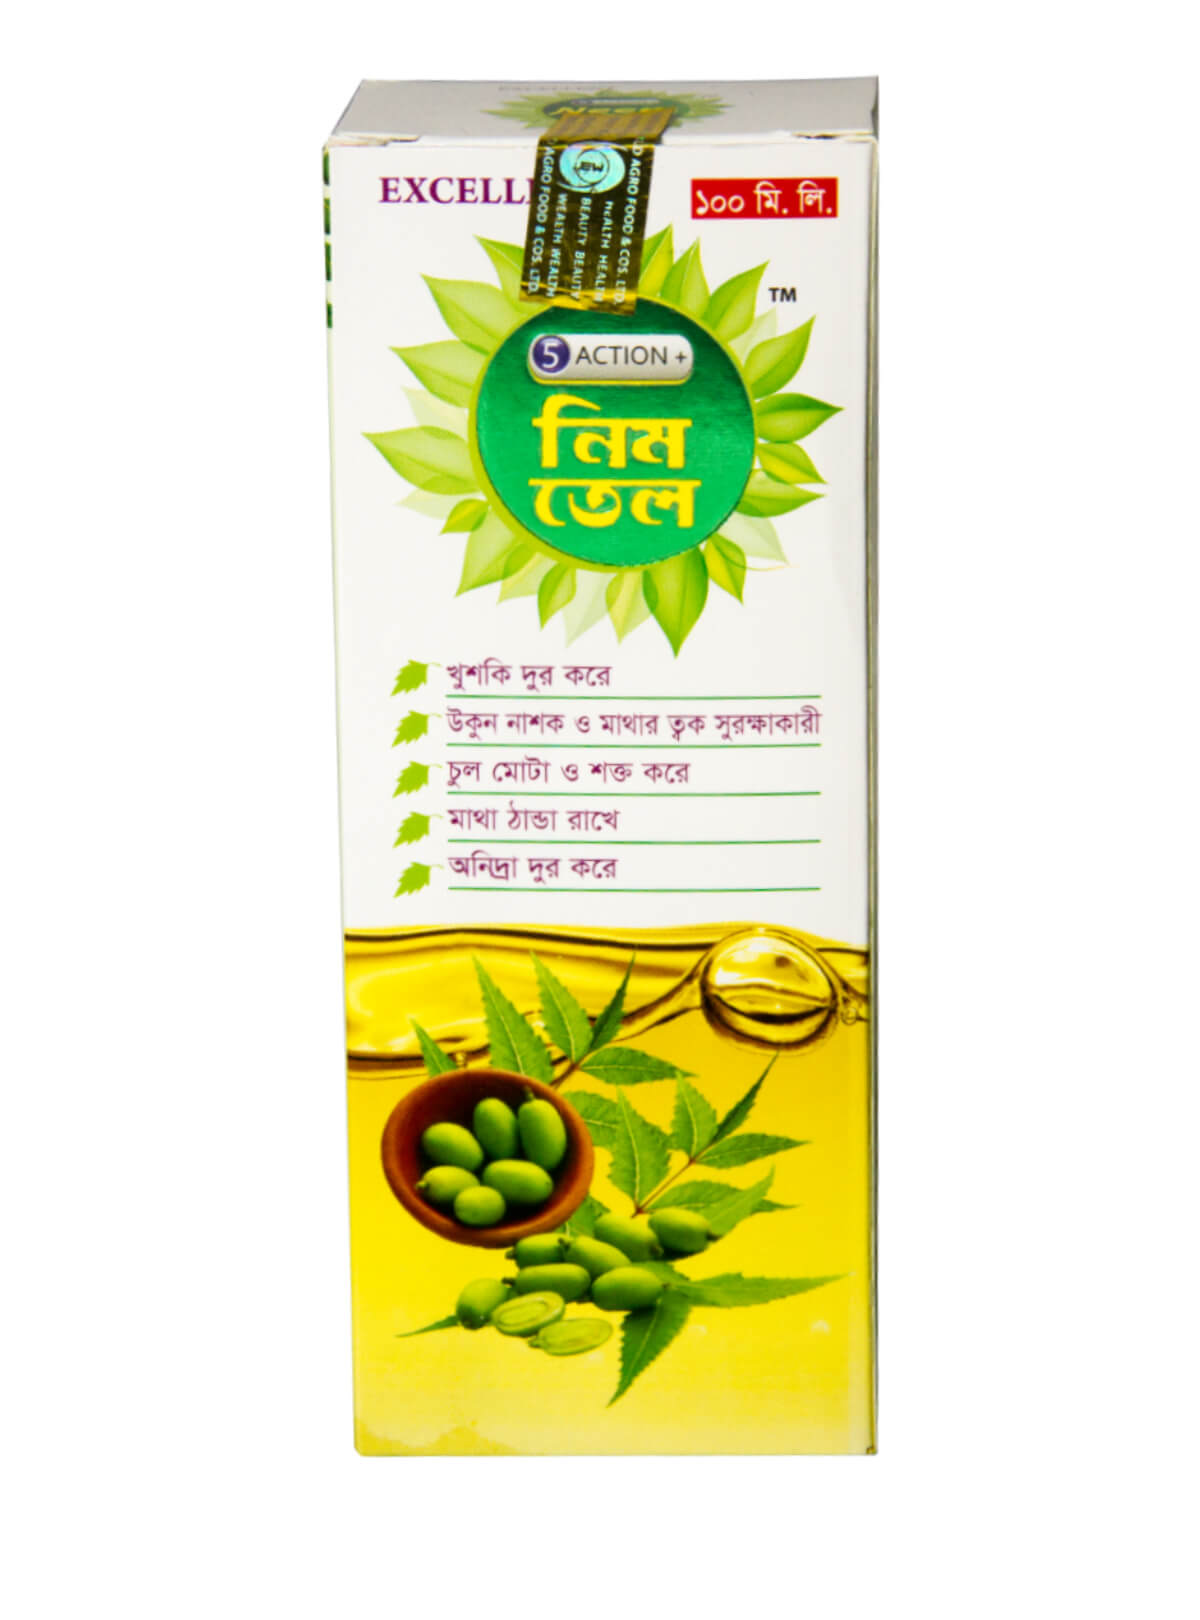 Five Action Plus Neem Oil